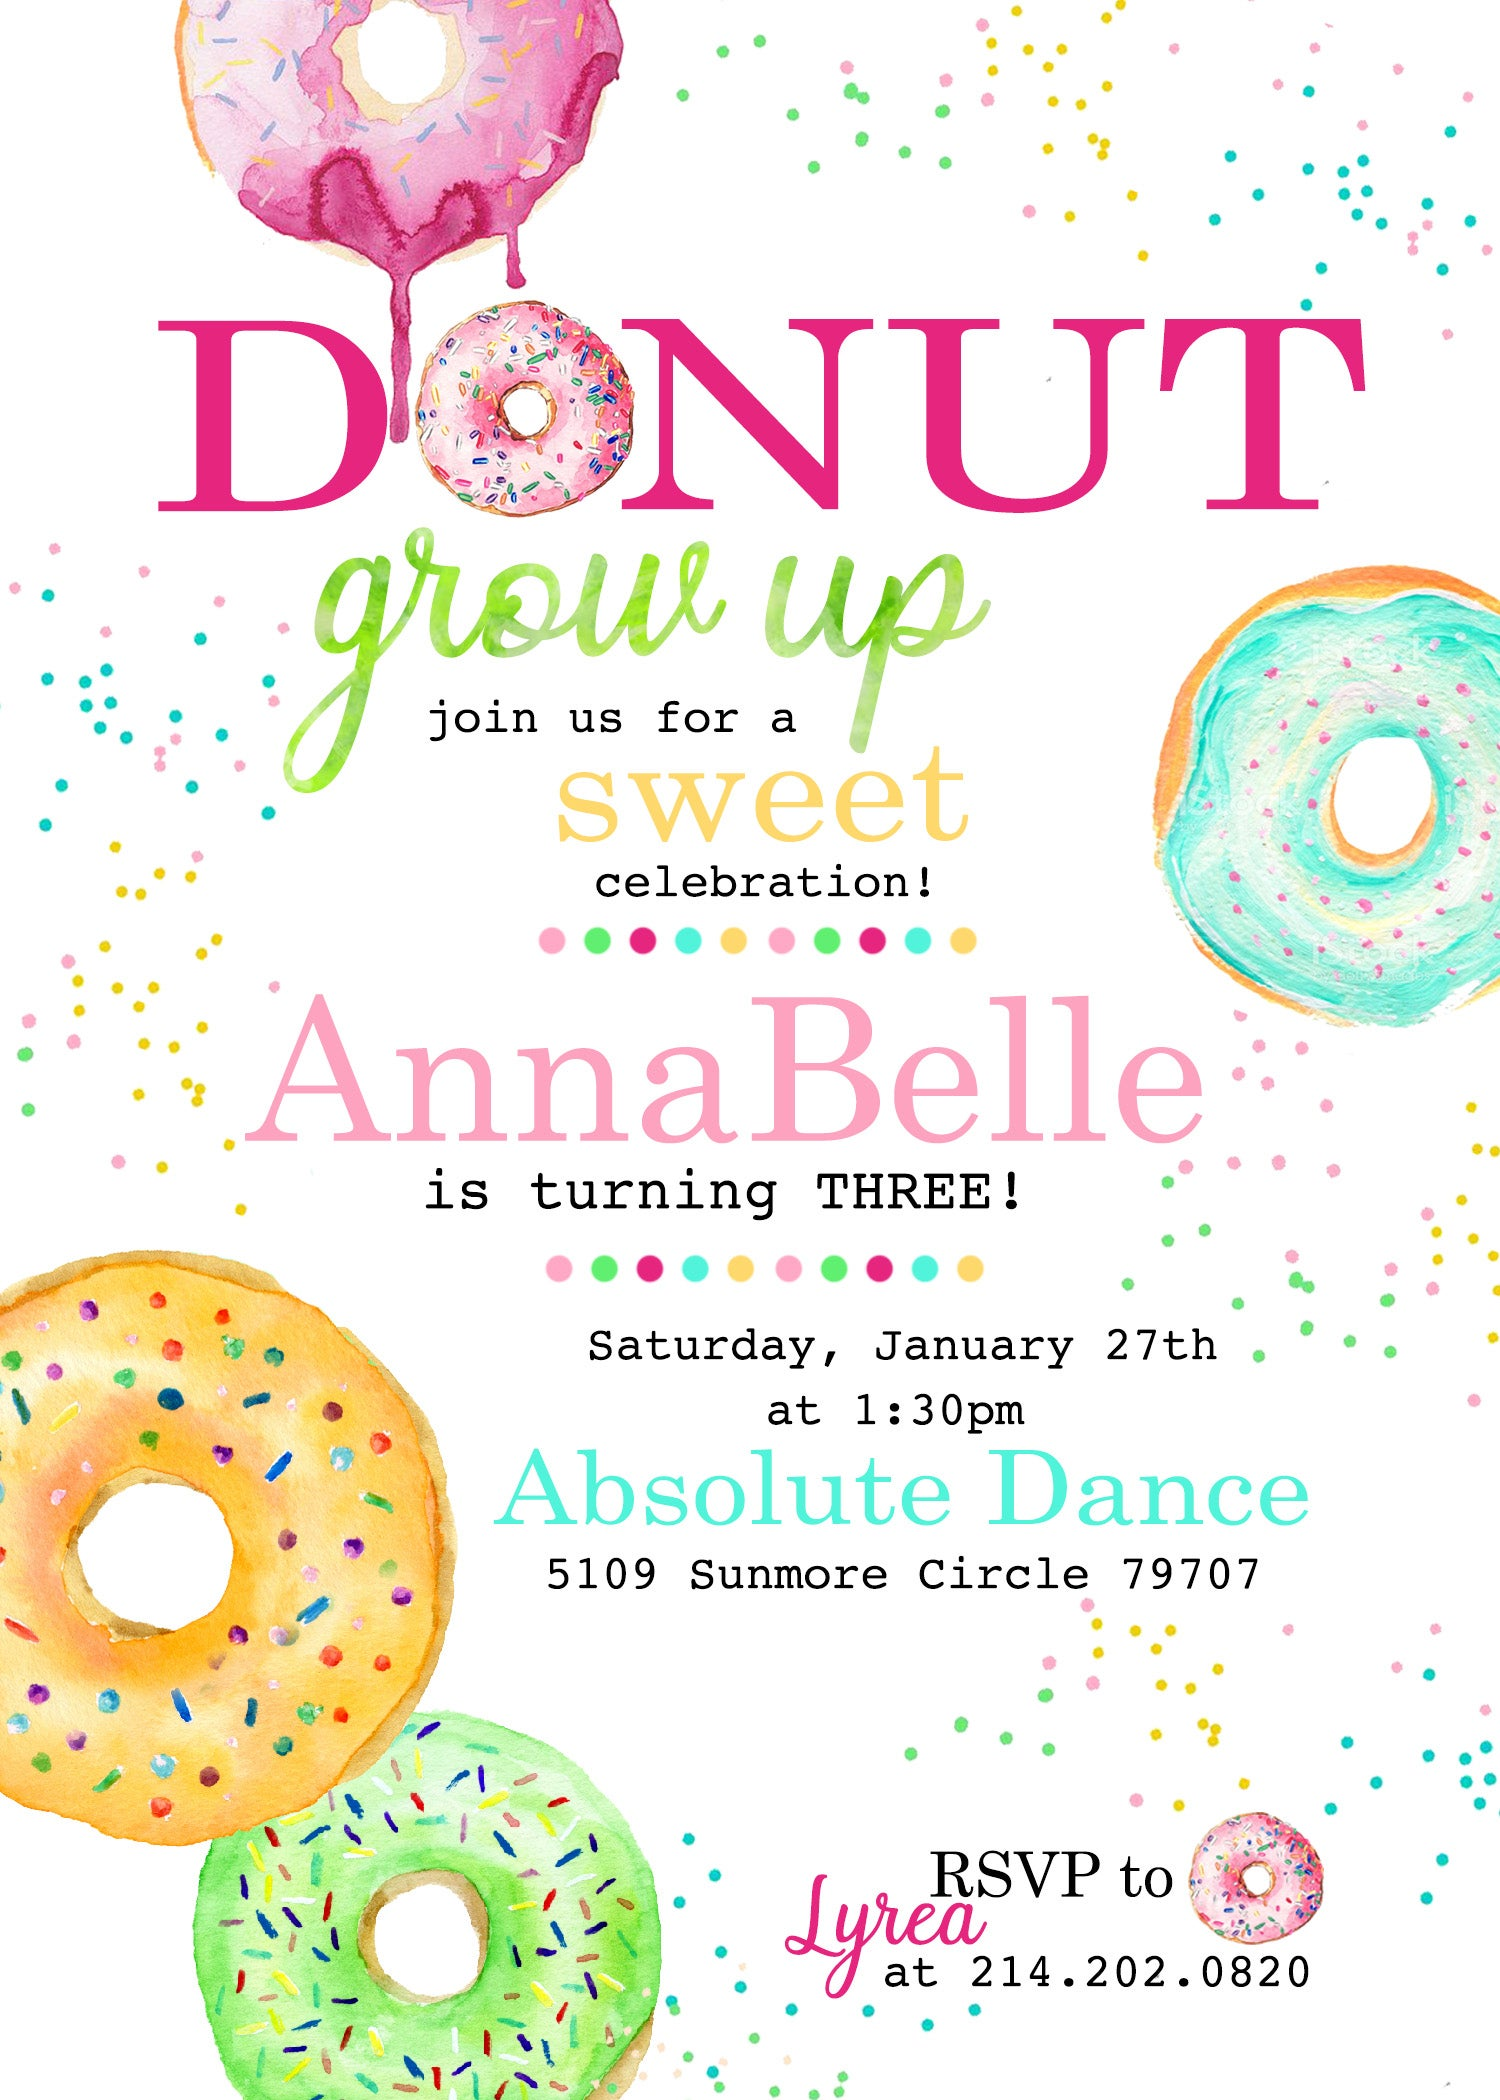 paperfoxprints  u2014 donut grow up birthday party